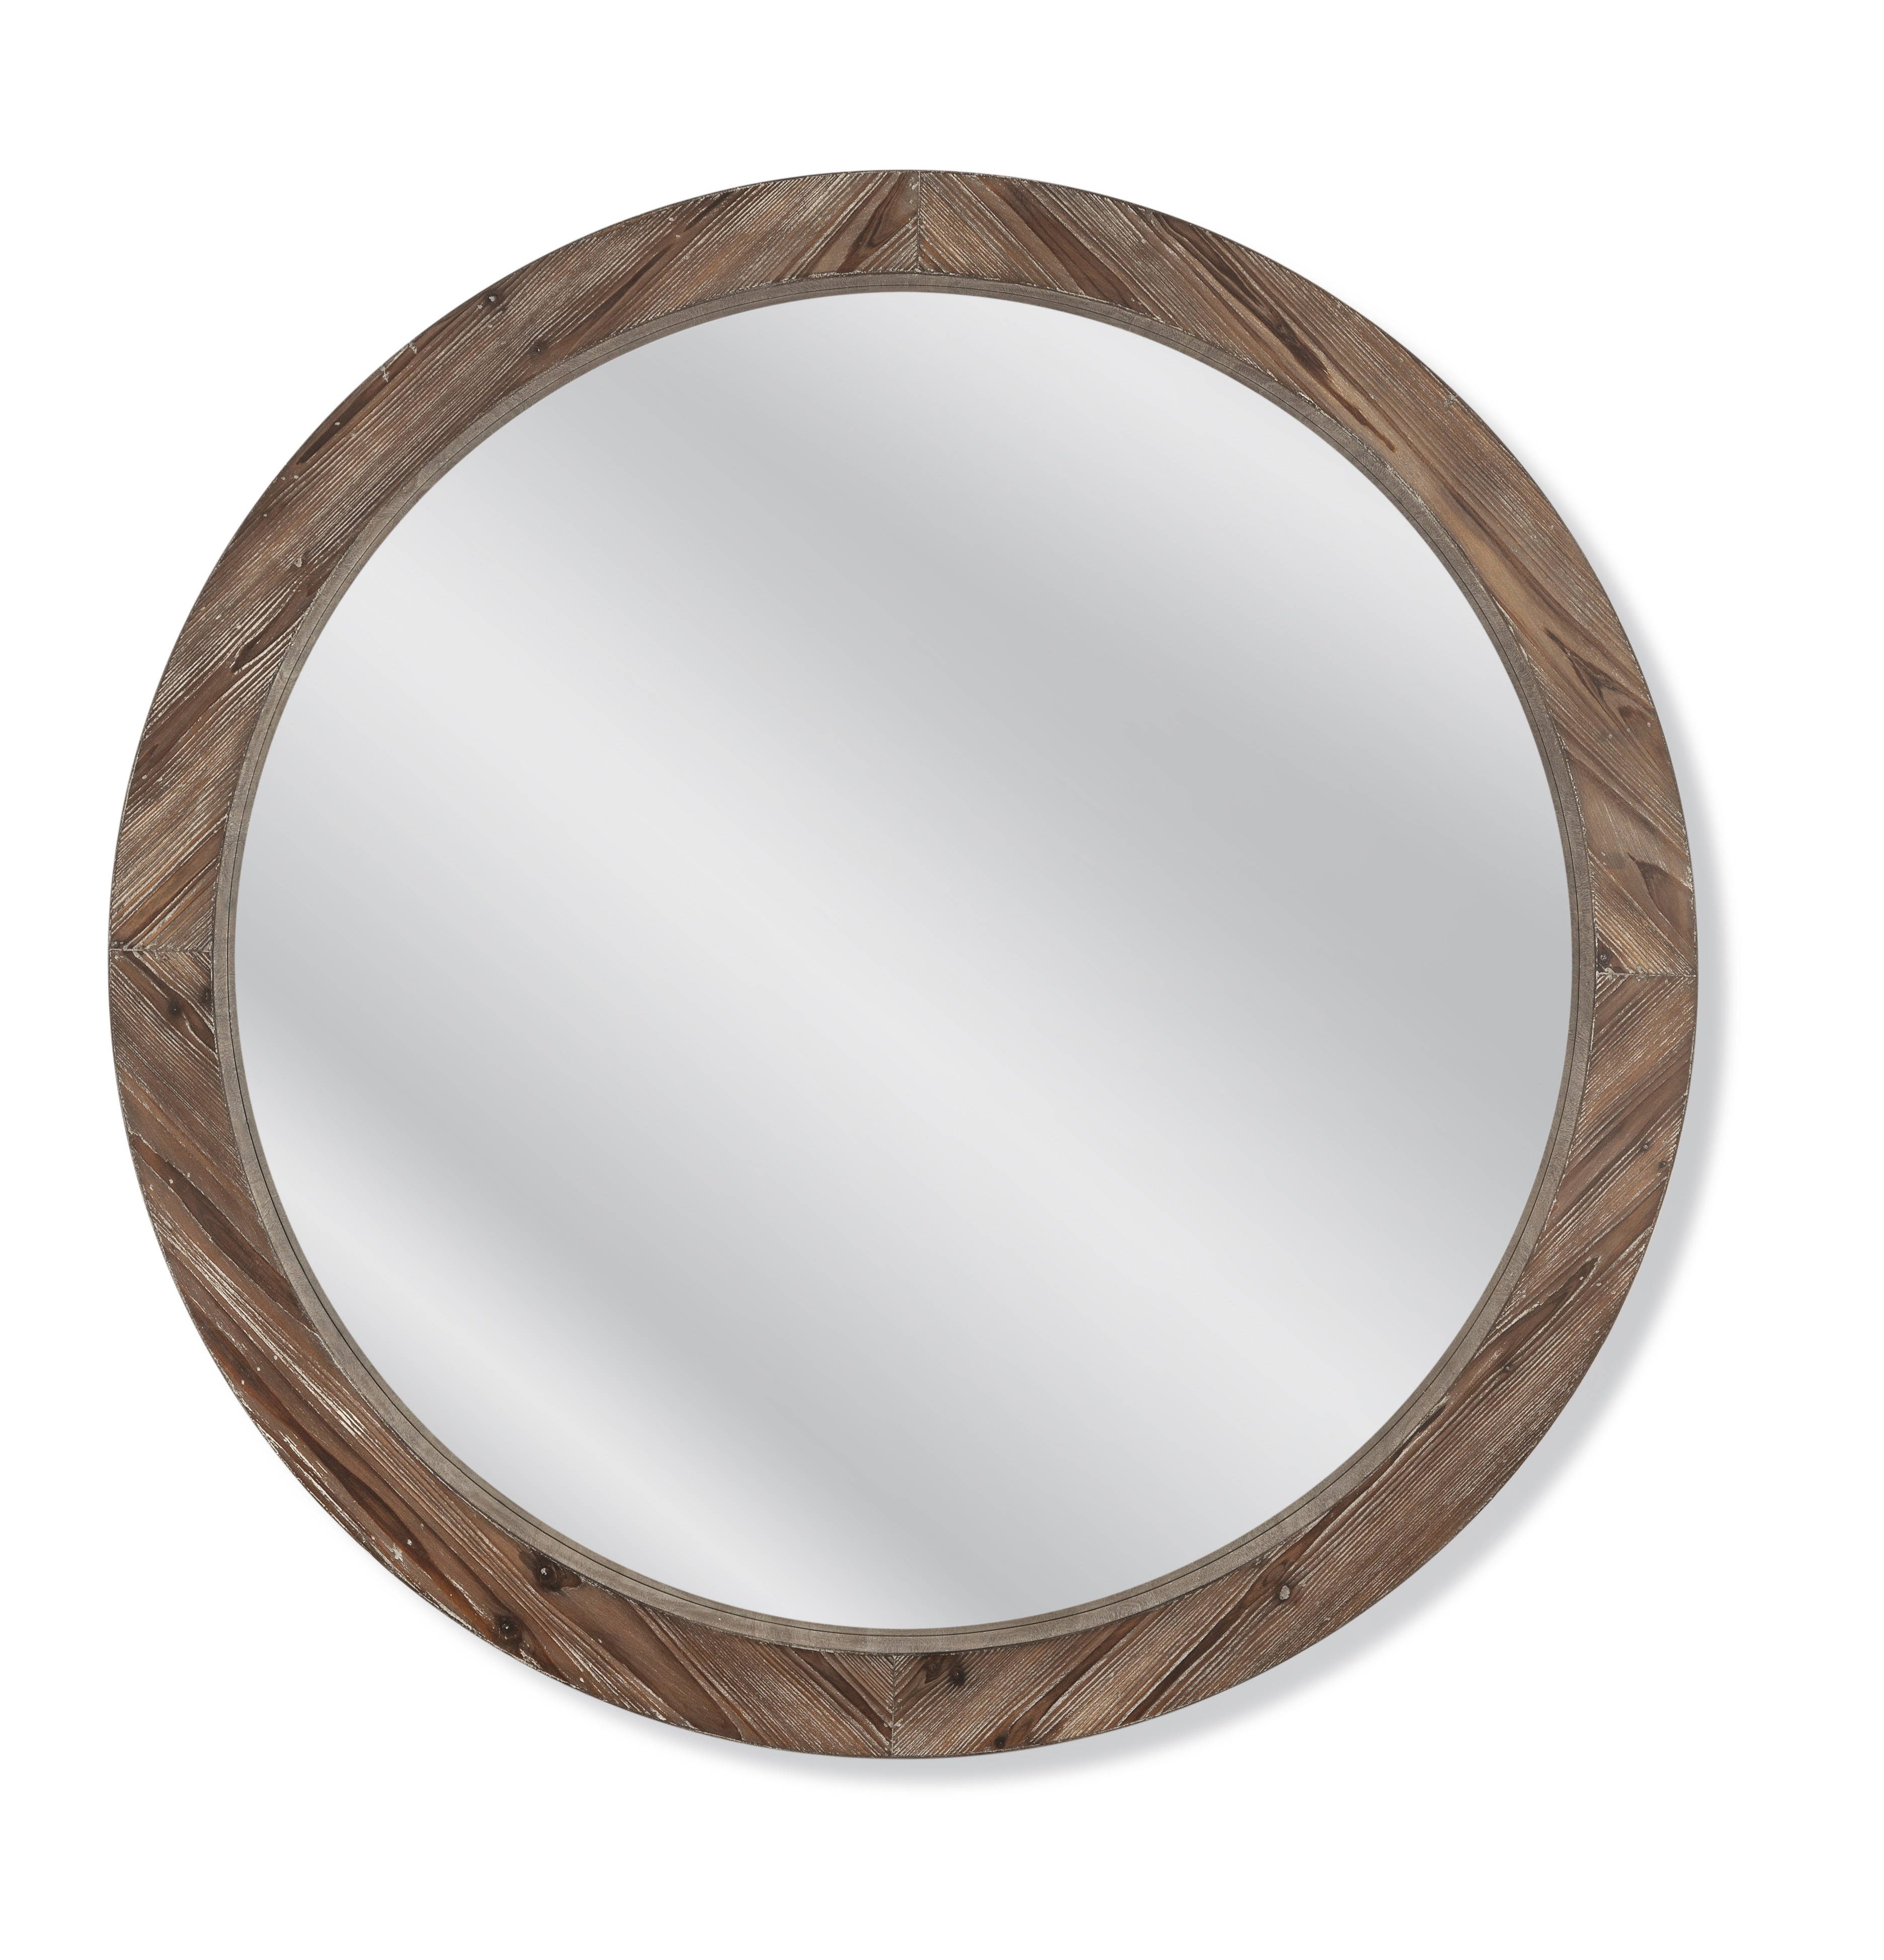 Preferred Bassett Mirror Jacques Natural Wood Round Wall Mirror In Round Wood Wall Mirrors (View 16 of 20)